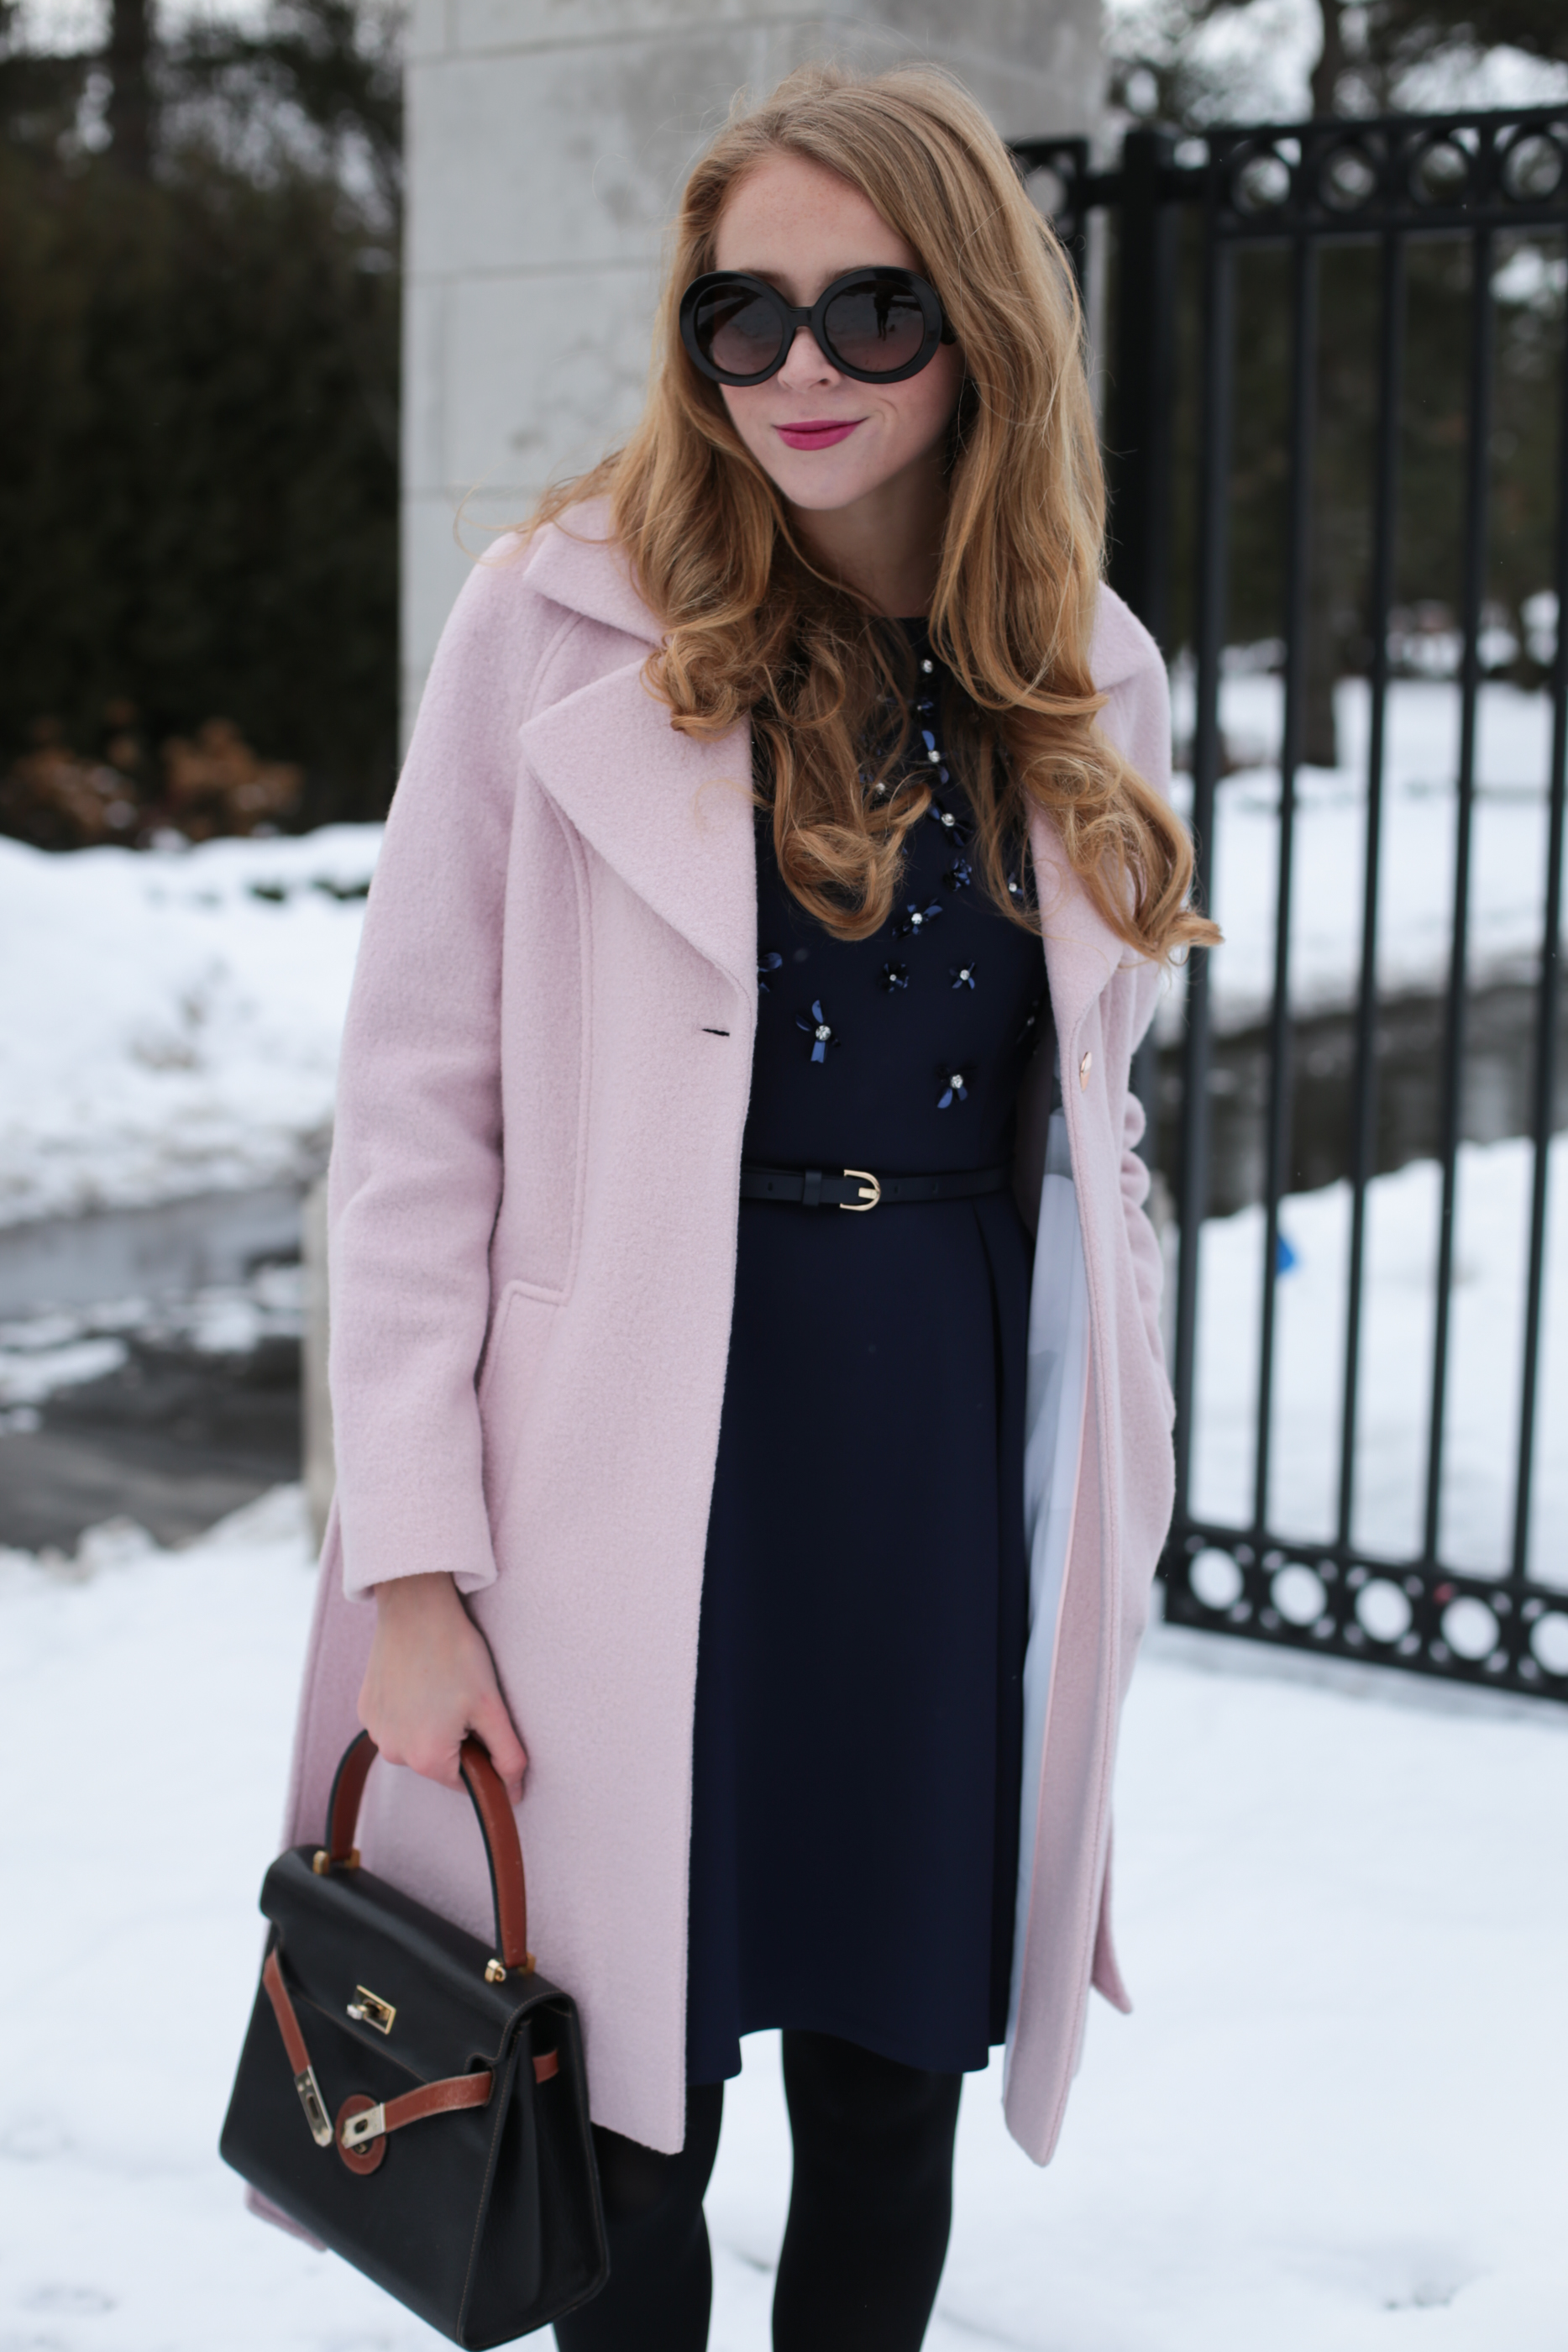 jackie-o-inspired-outfit-7-of-10